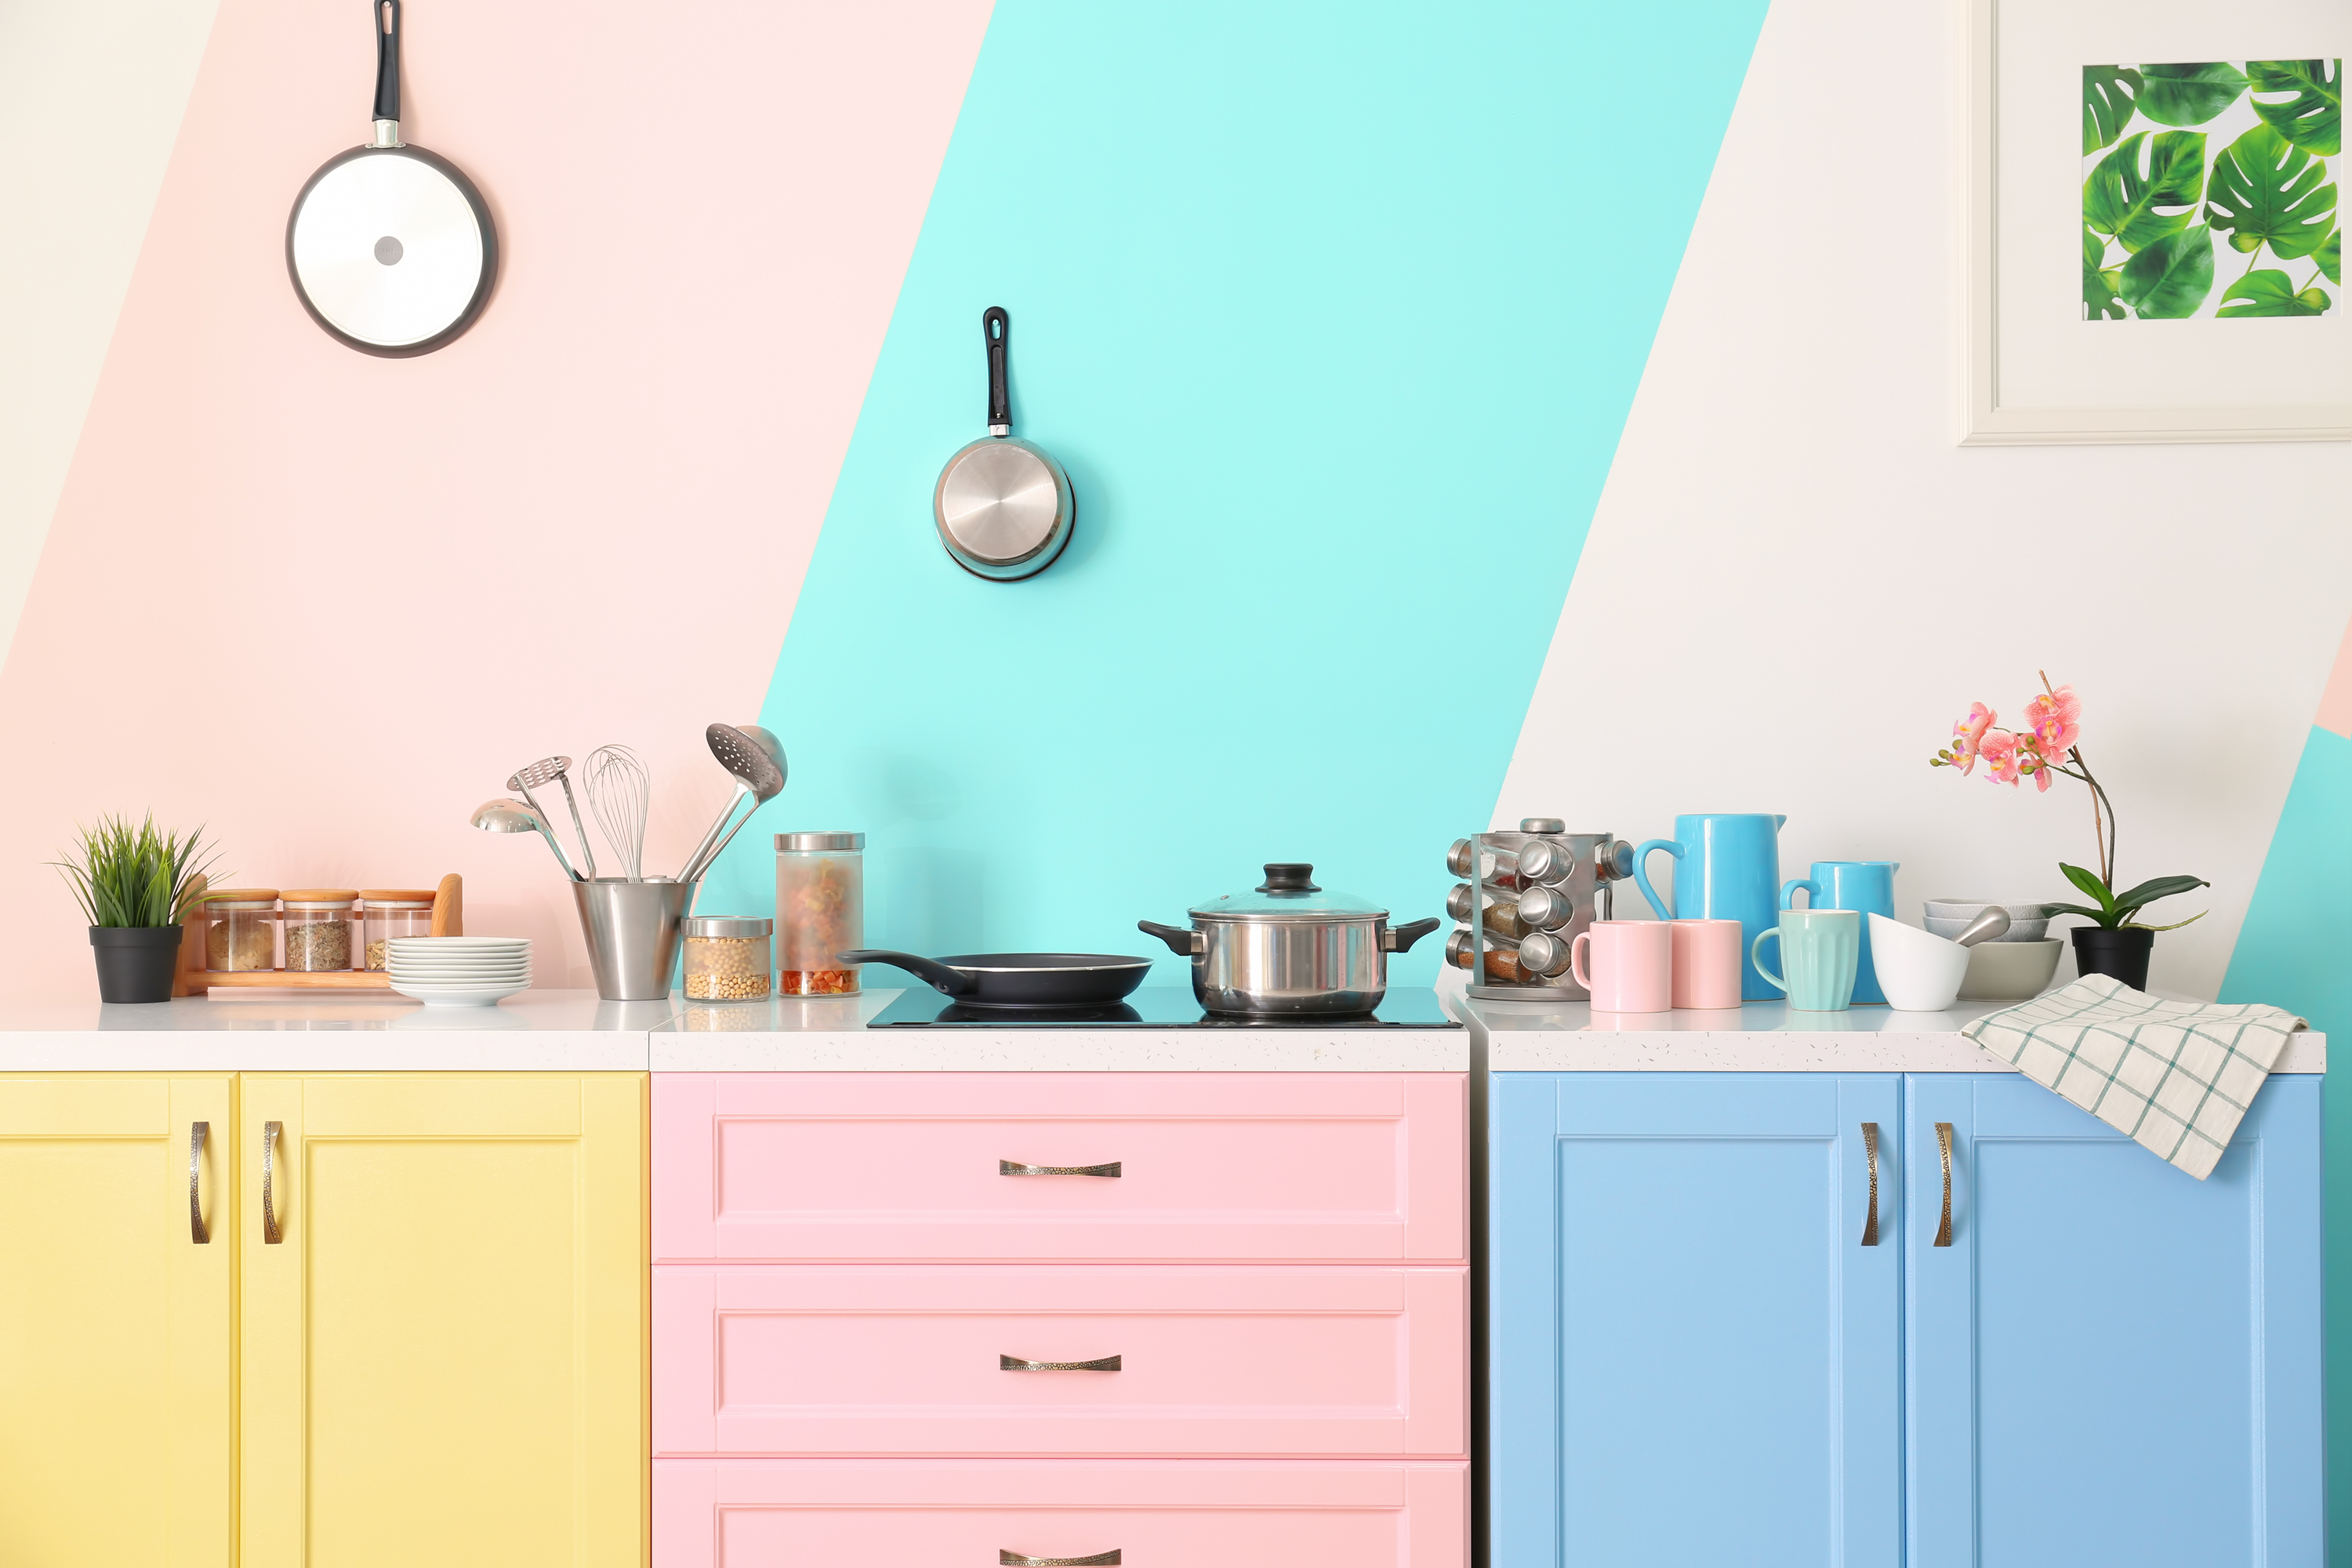 The kitchen is one of the most important rooms in the home, so make sure it is up to date. These frugal kitchen updates will have your kitchen up to date in no time.